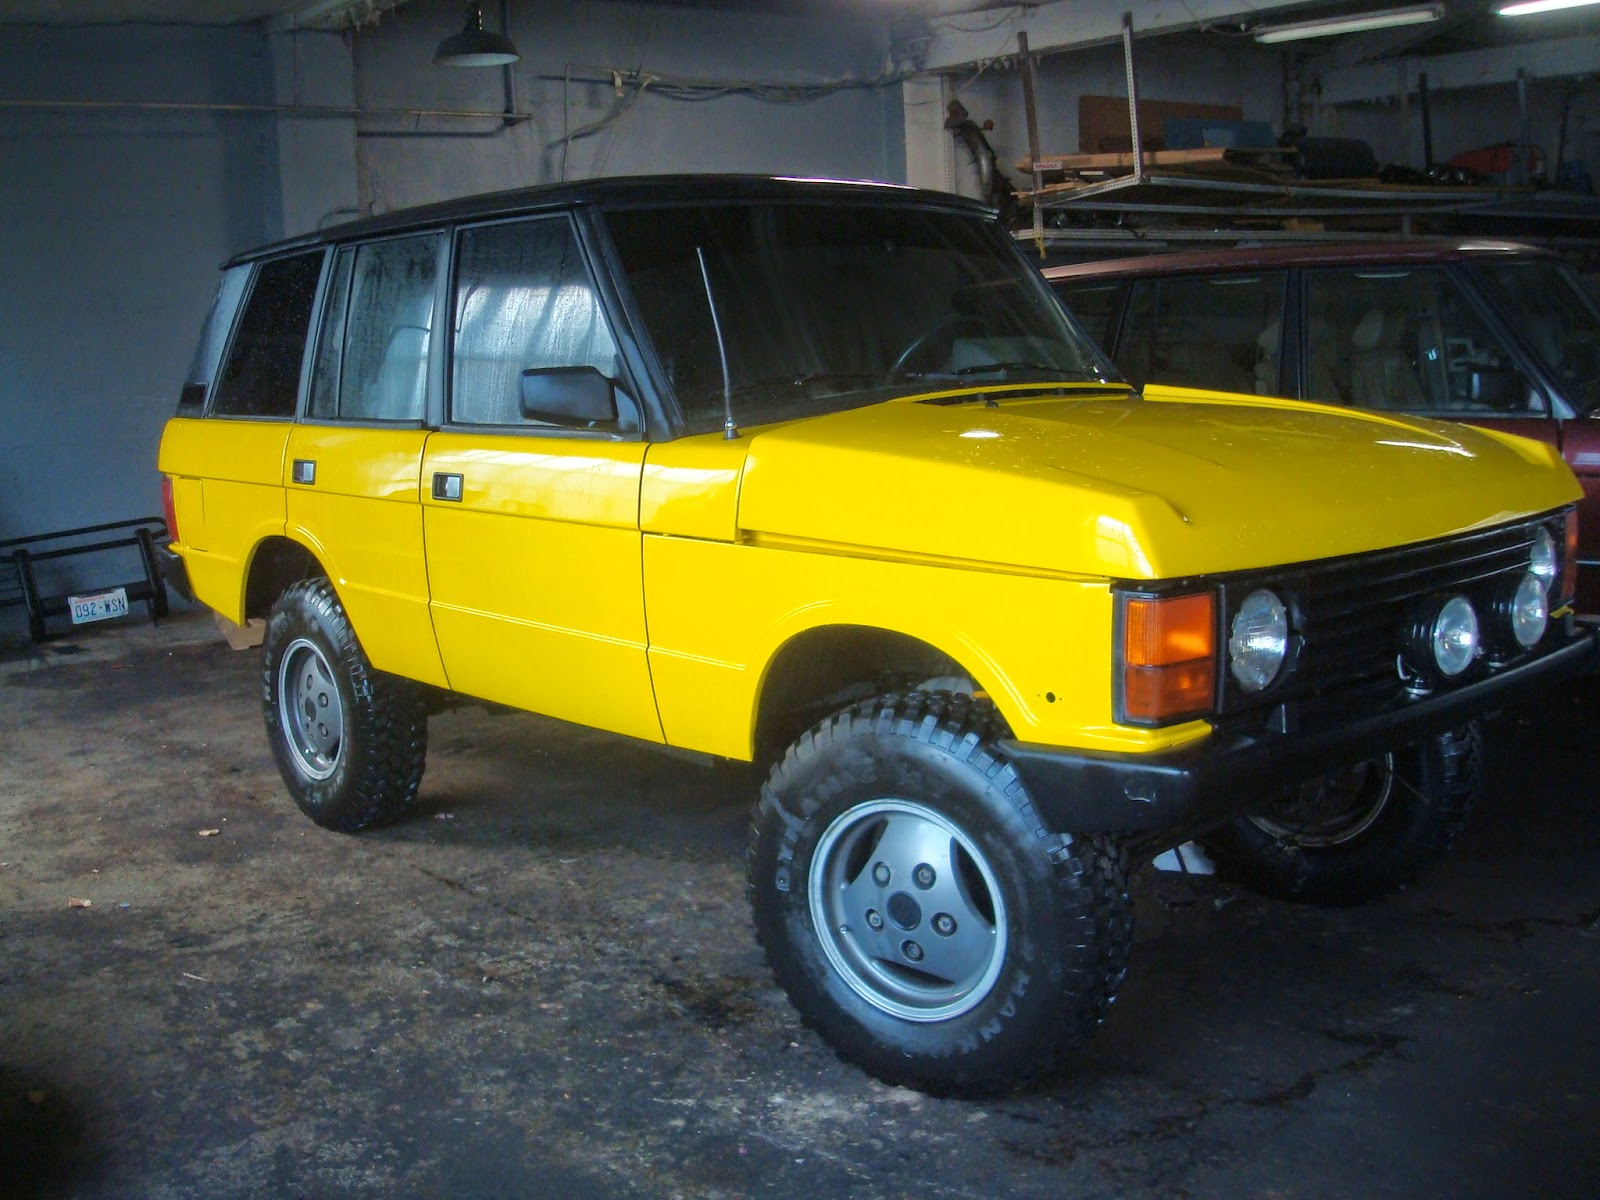 Laughs And Lashings 1989 Range Rover tdi sel & 5 speed